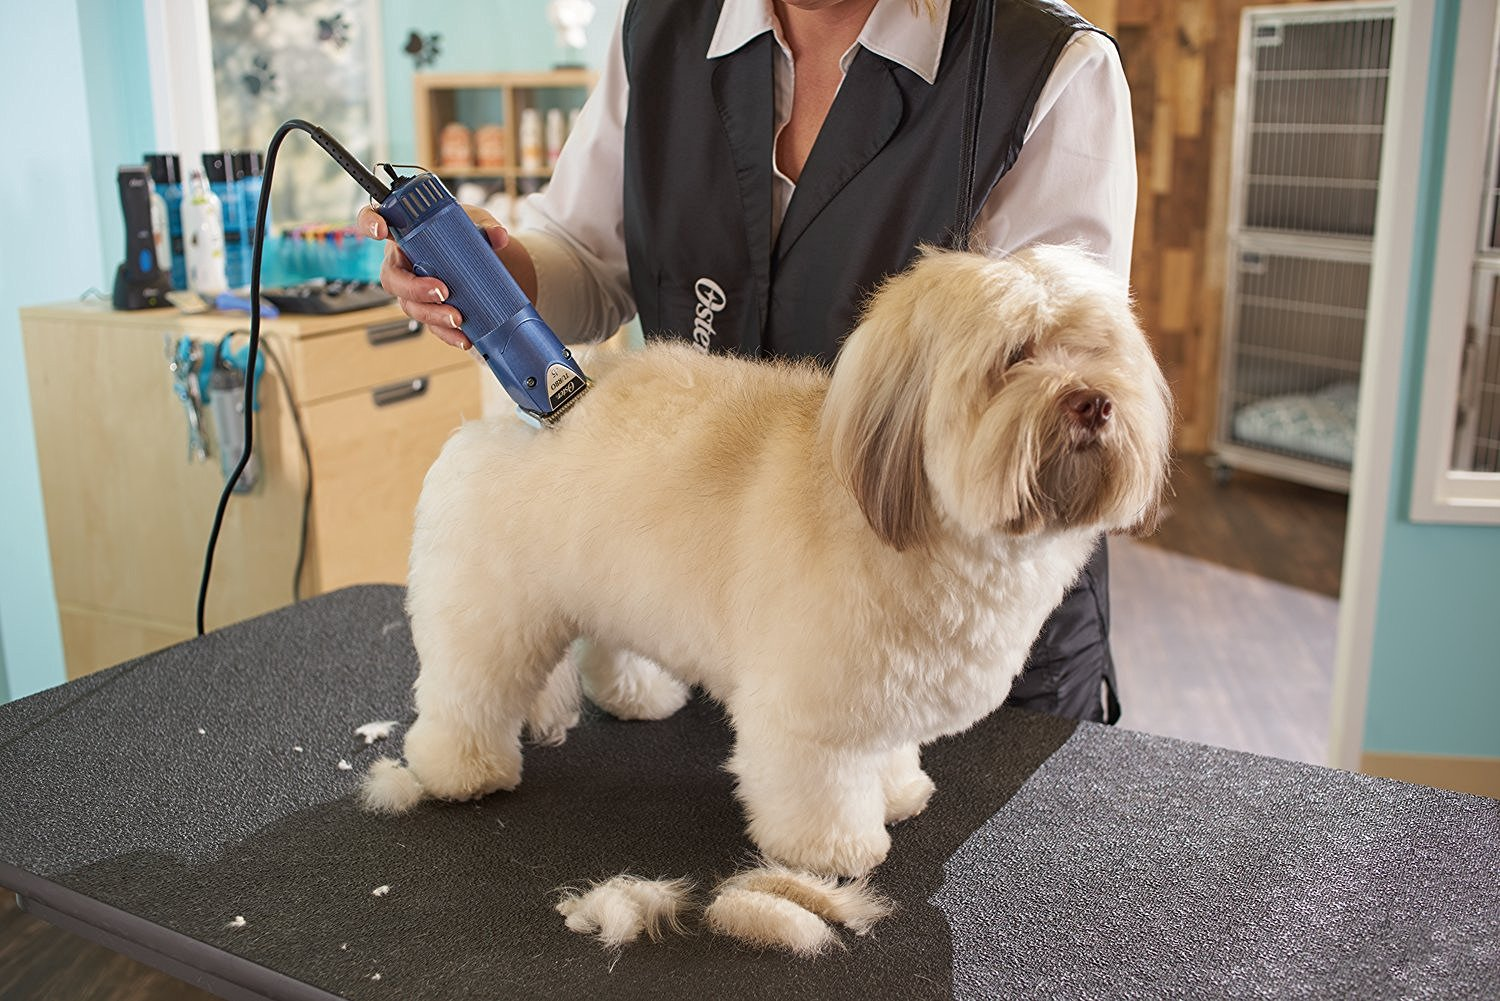 Dog Grooming Clippers For Poodles